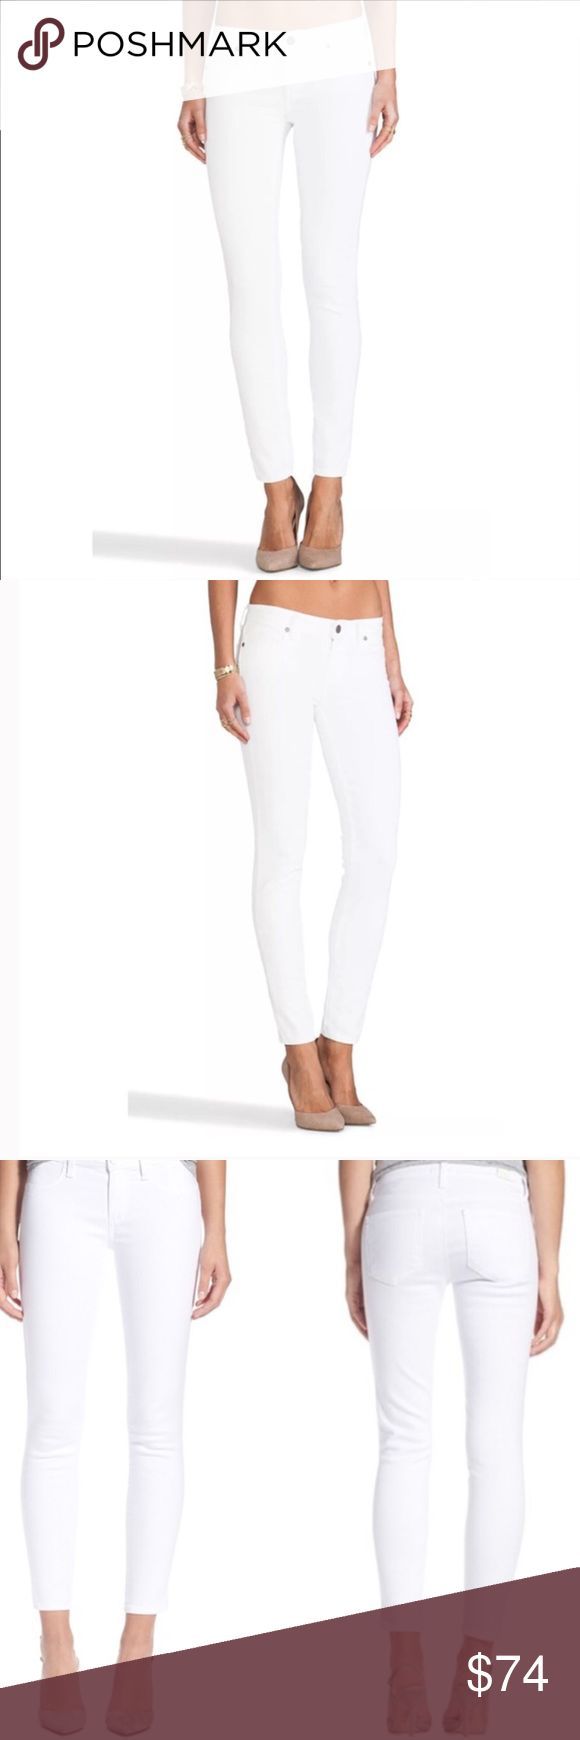 "PAIGE Verdugo Ankle Optic White Crop Skinny Jeans PAIGE Verdugo Ankle Optic White Skinny Cropped Denim Jeans. Size 25. Perfect condition never worn. Purchased for $179. Measurements without stretching: Waist across 13"" Rise 7 1/2"" Inseam 26.5"" No trades please 💕 Paige Jeans Jeans Ankle & Cropped"